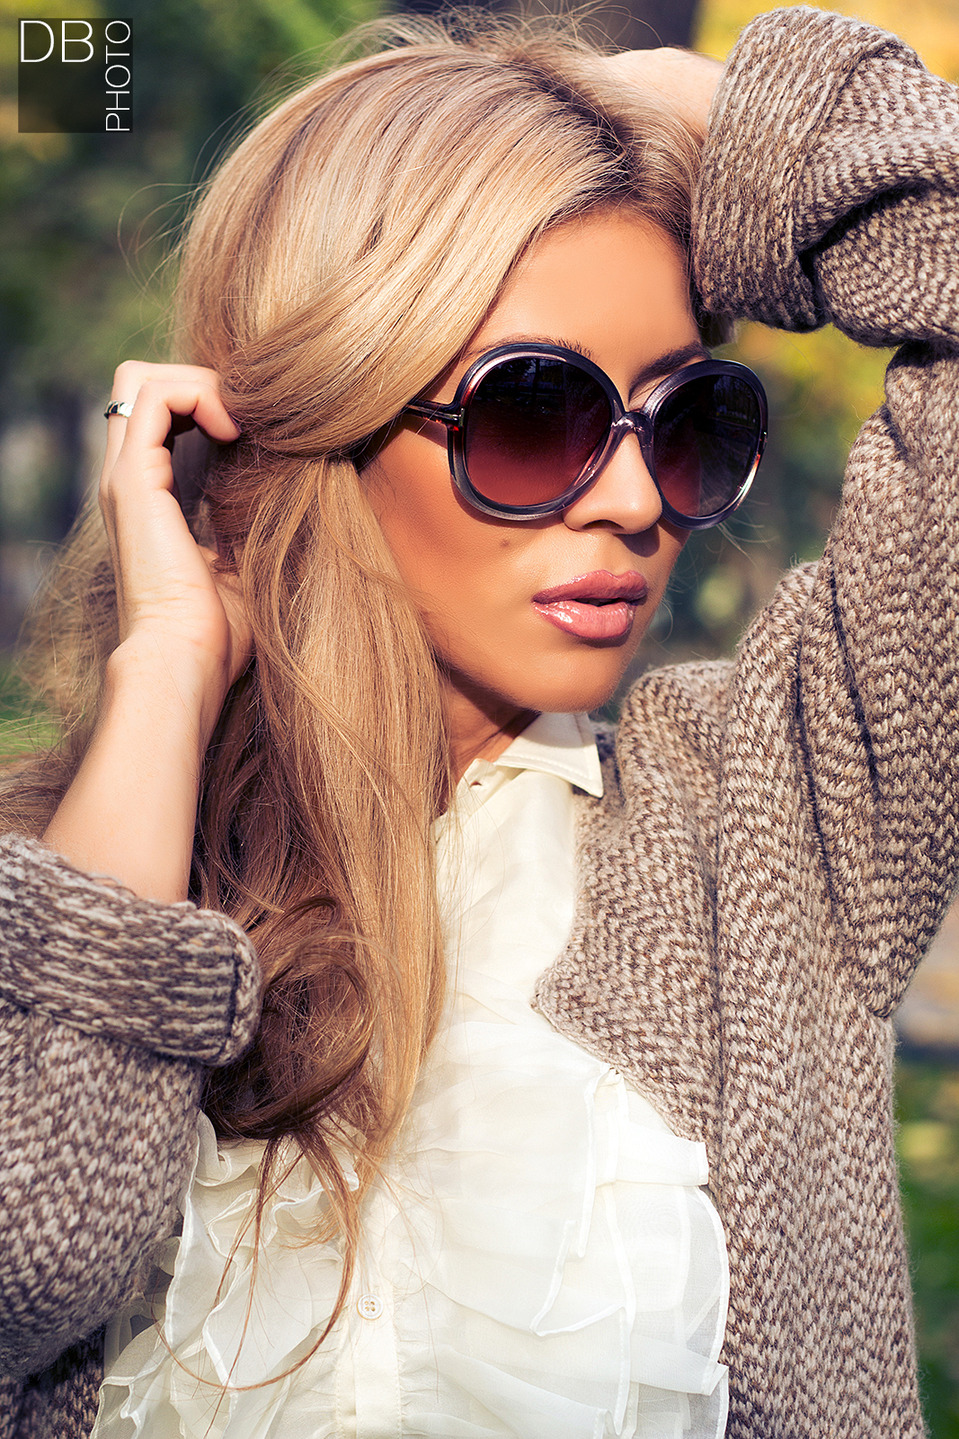 Girl in the sunglasses | glamour, model, girl, sunglasses, make-up, blouse, lipstick, long hair, birthmark, hands